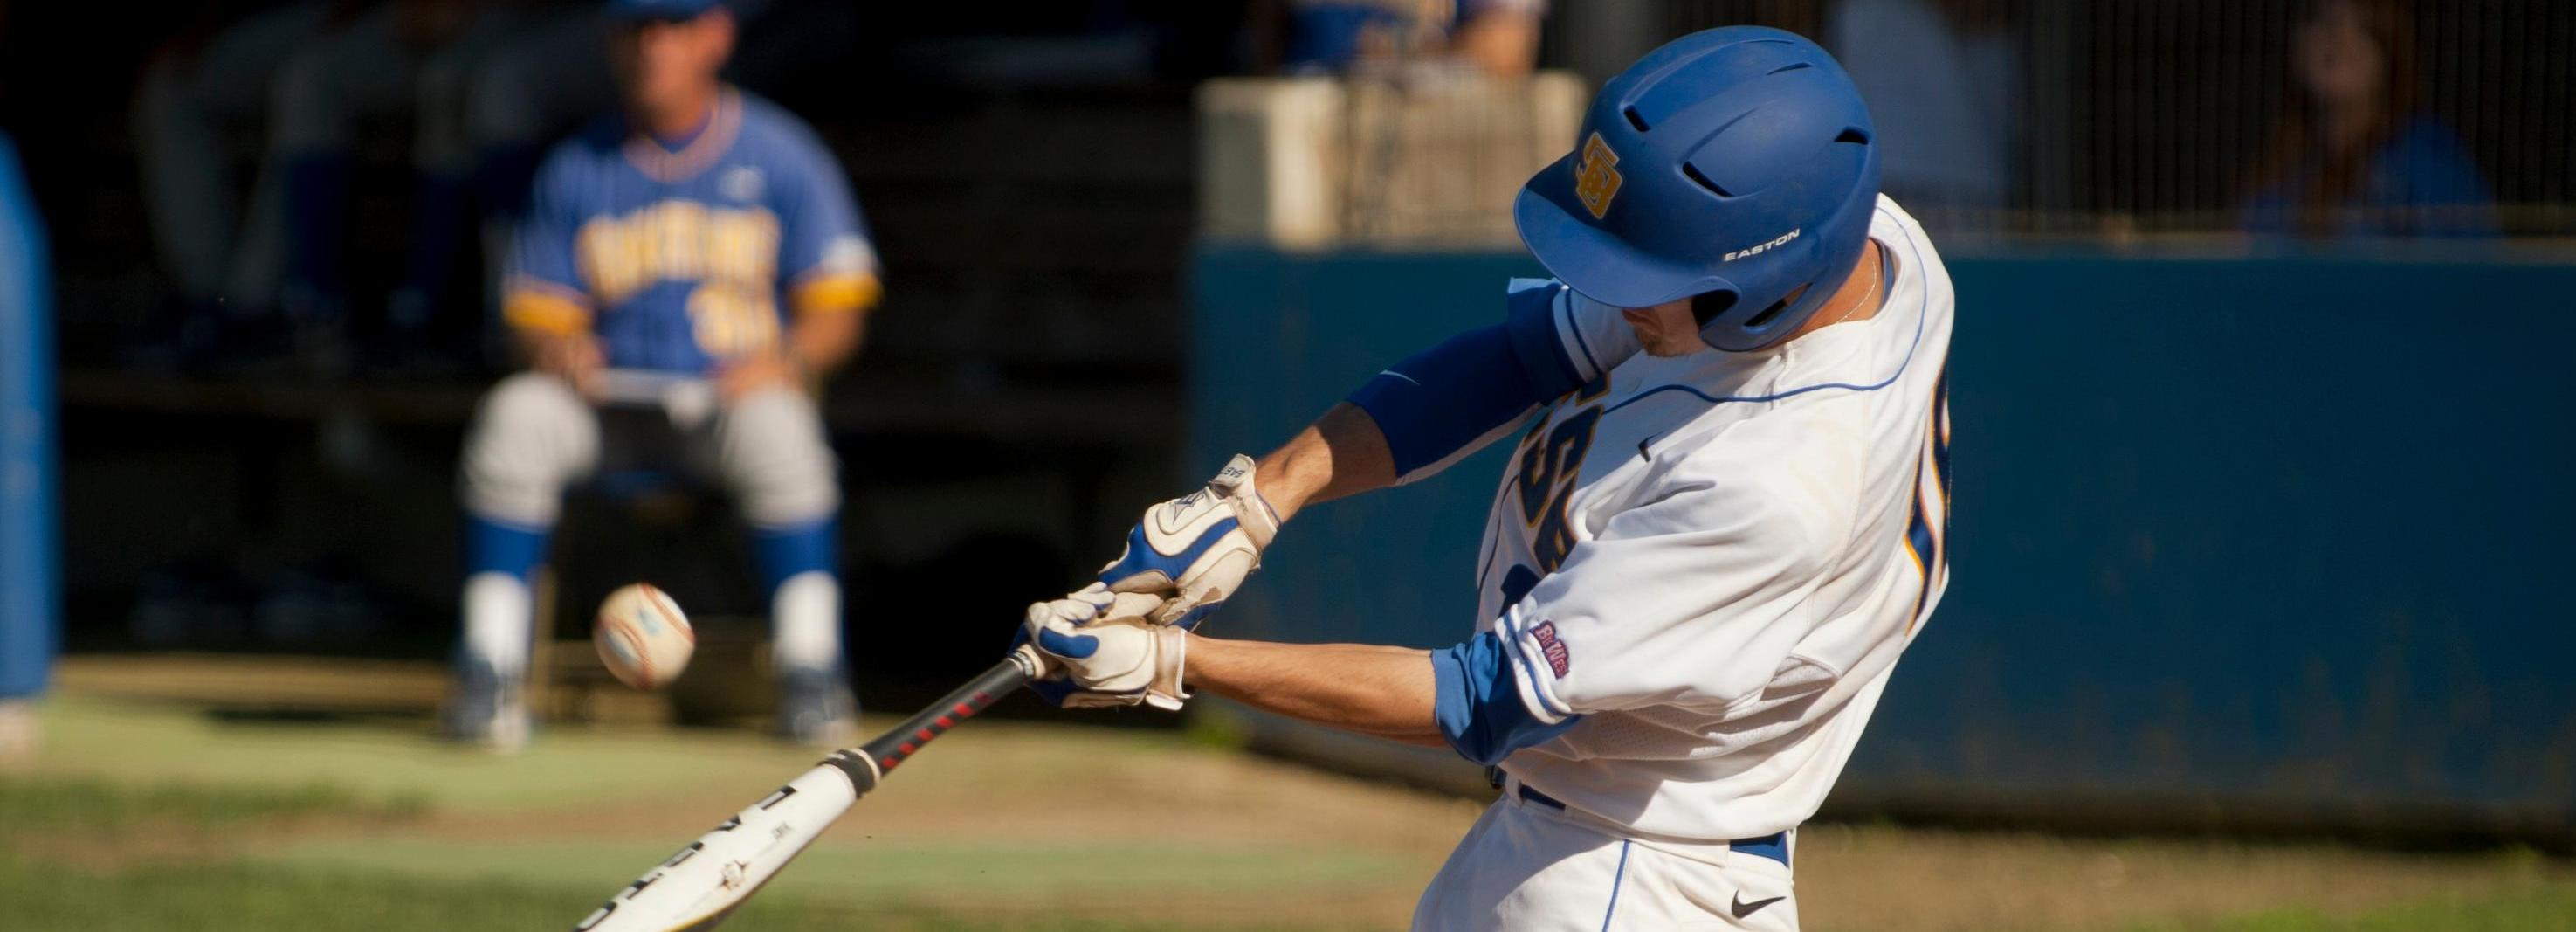 Gauchos Outhit LMU in Tough Loss